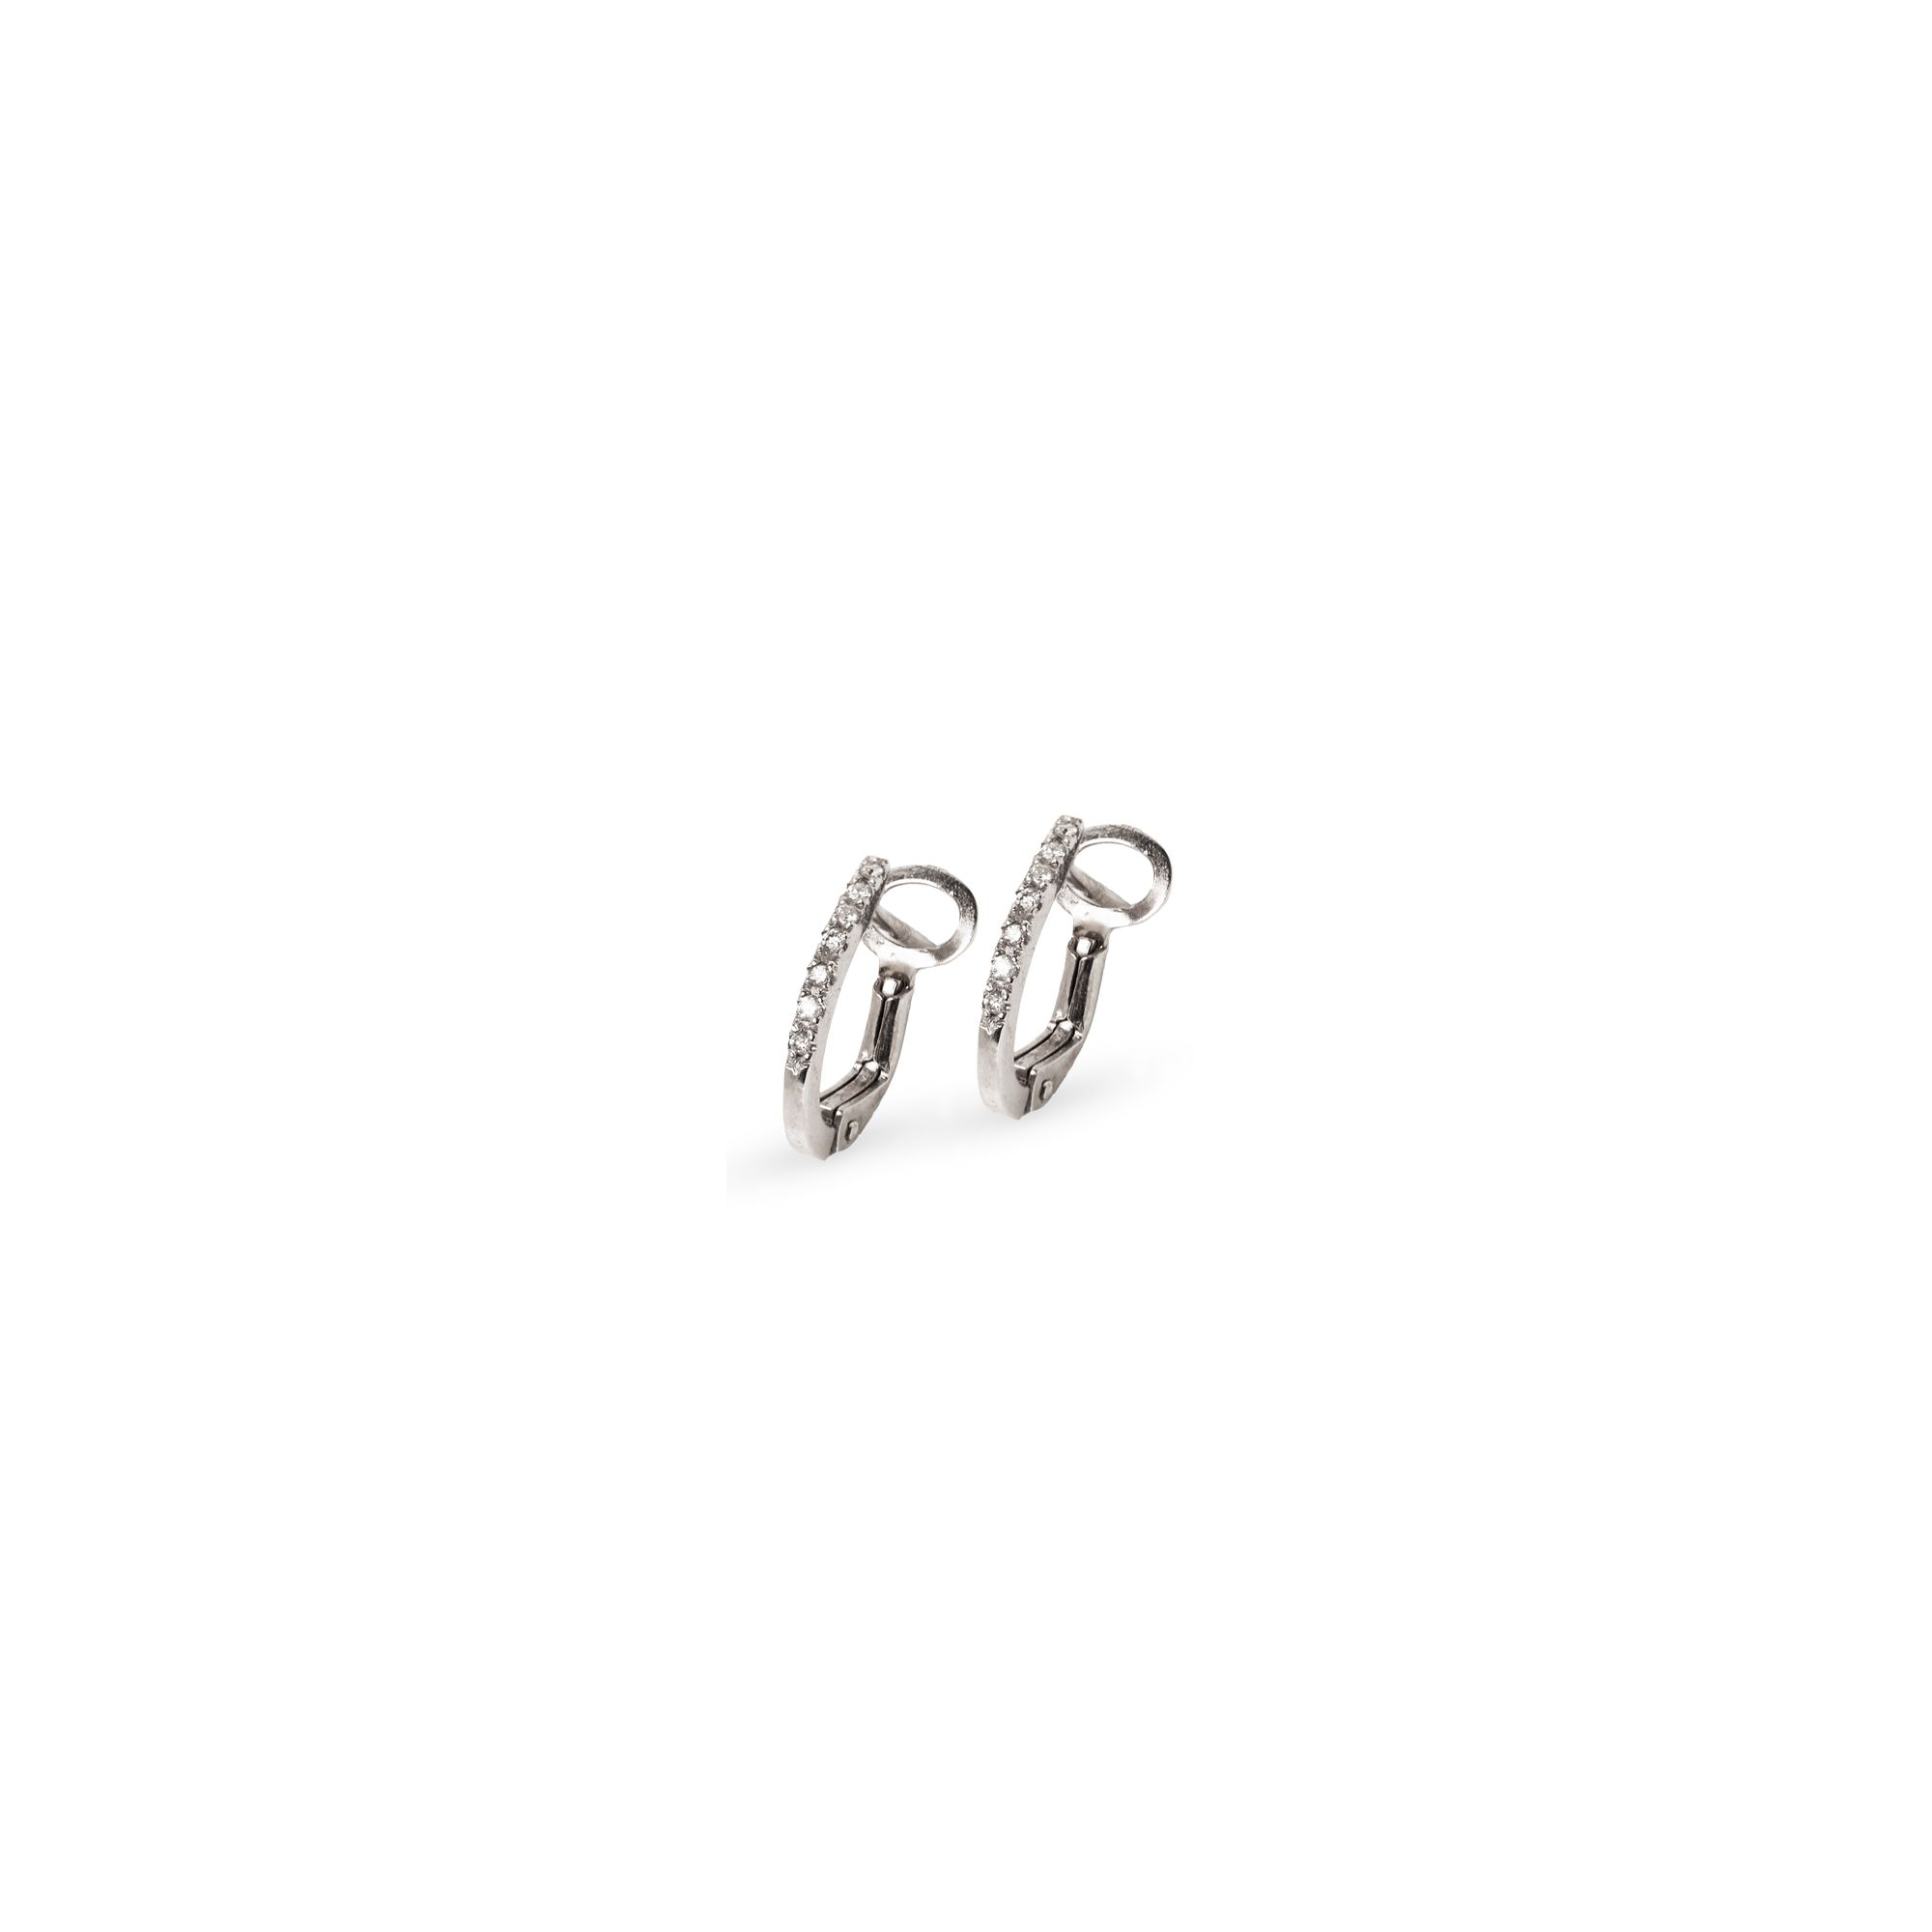 'Balance' small hoop earrings Earrings in white gold and diamonds